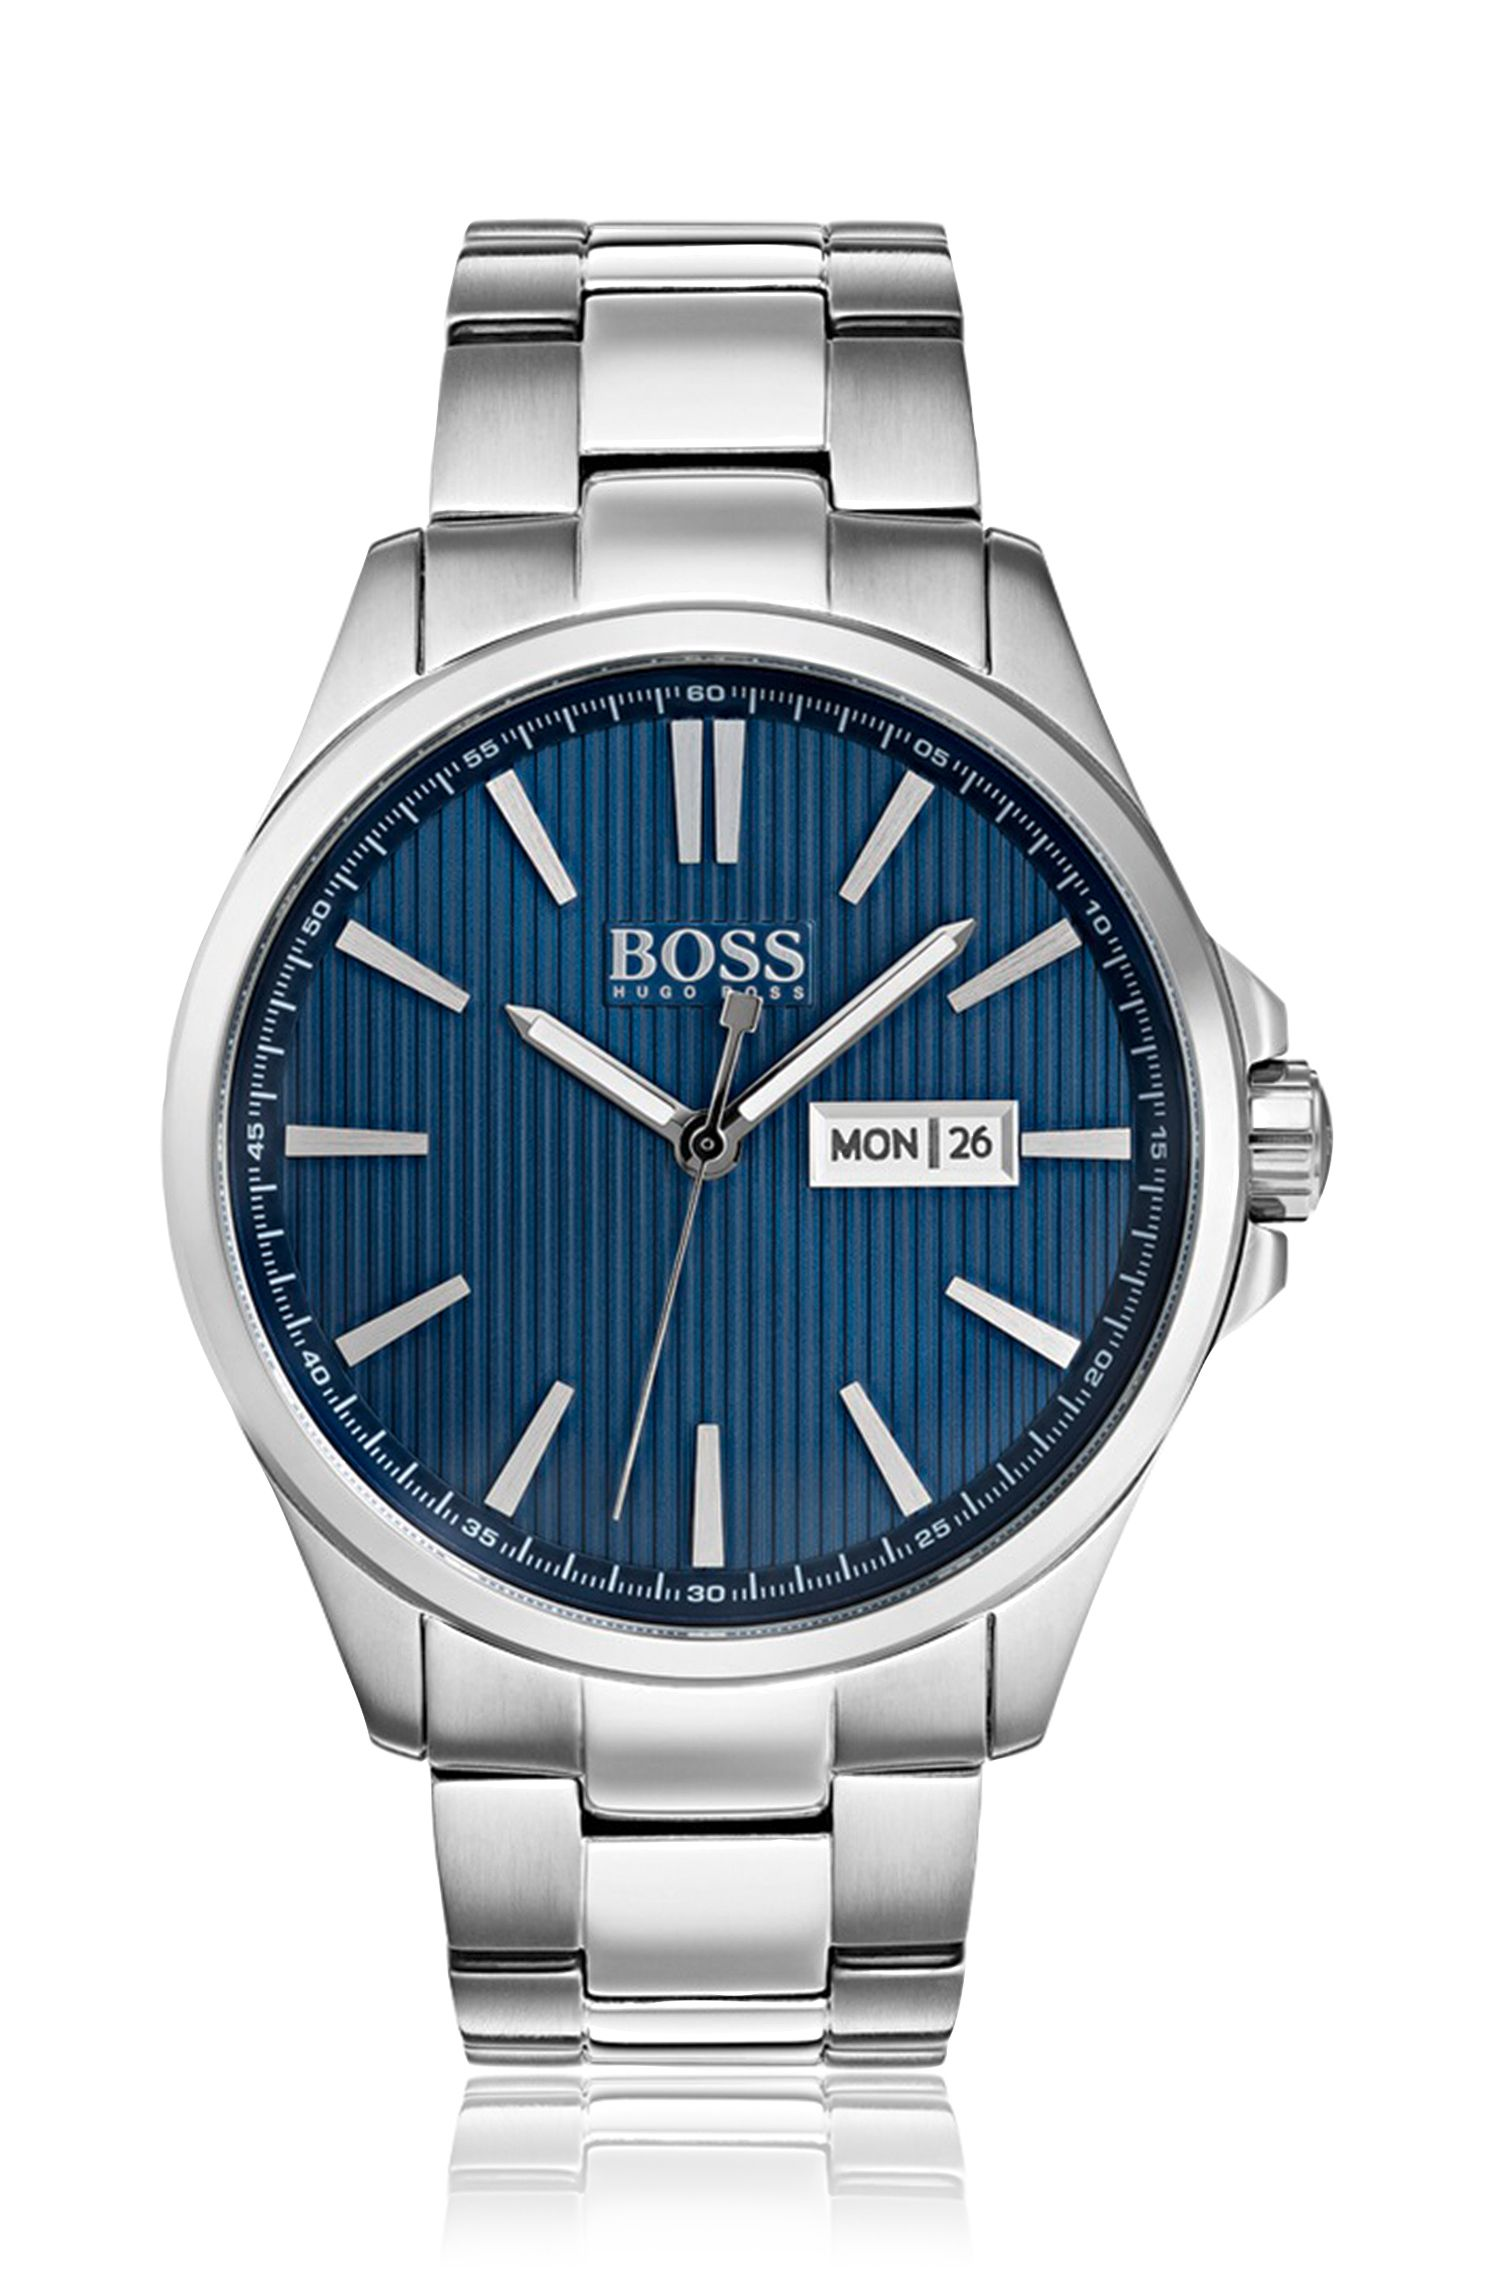 Stainless-steel watch with blue striped dial